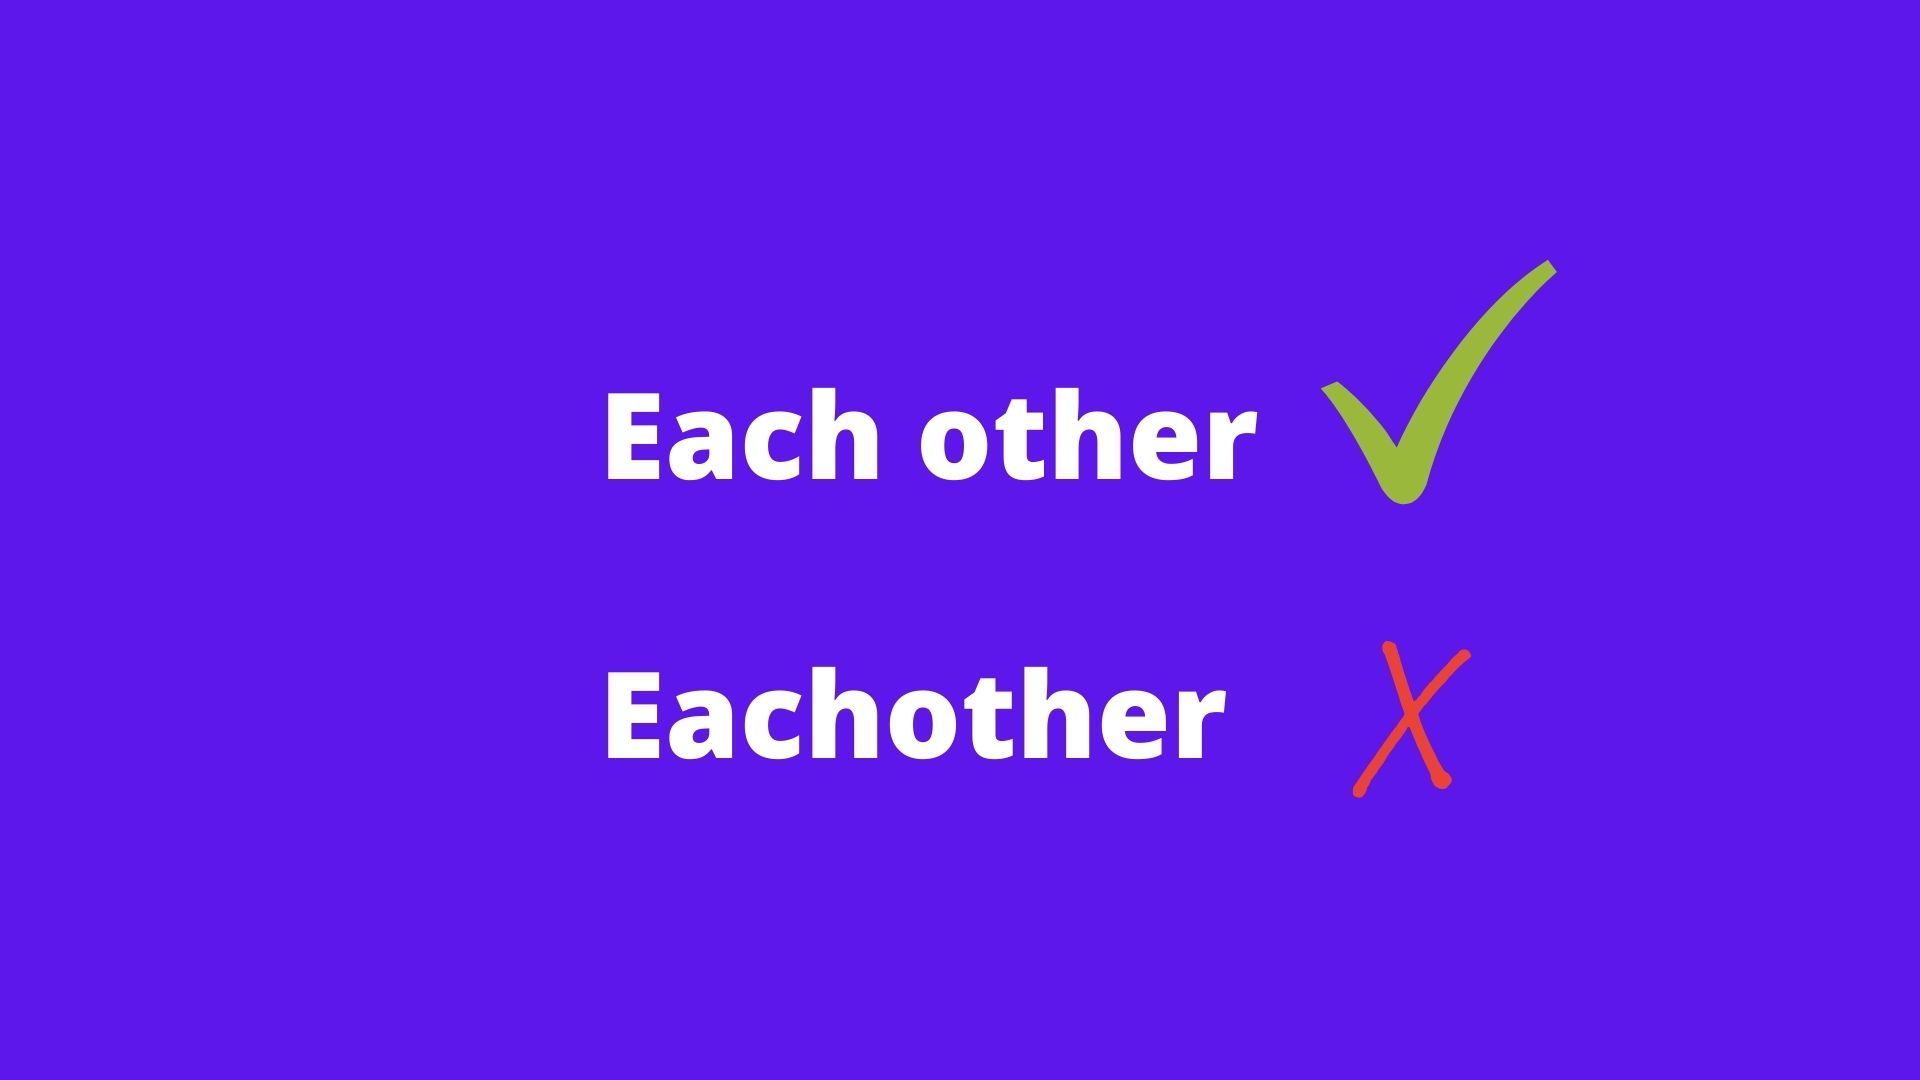 Graphic explaining the difference between each other and eachother, stating that eachother is incorrect.